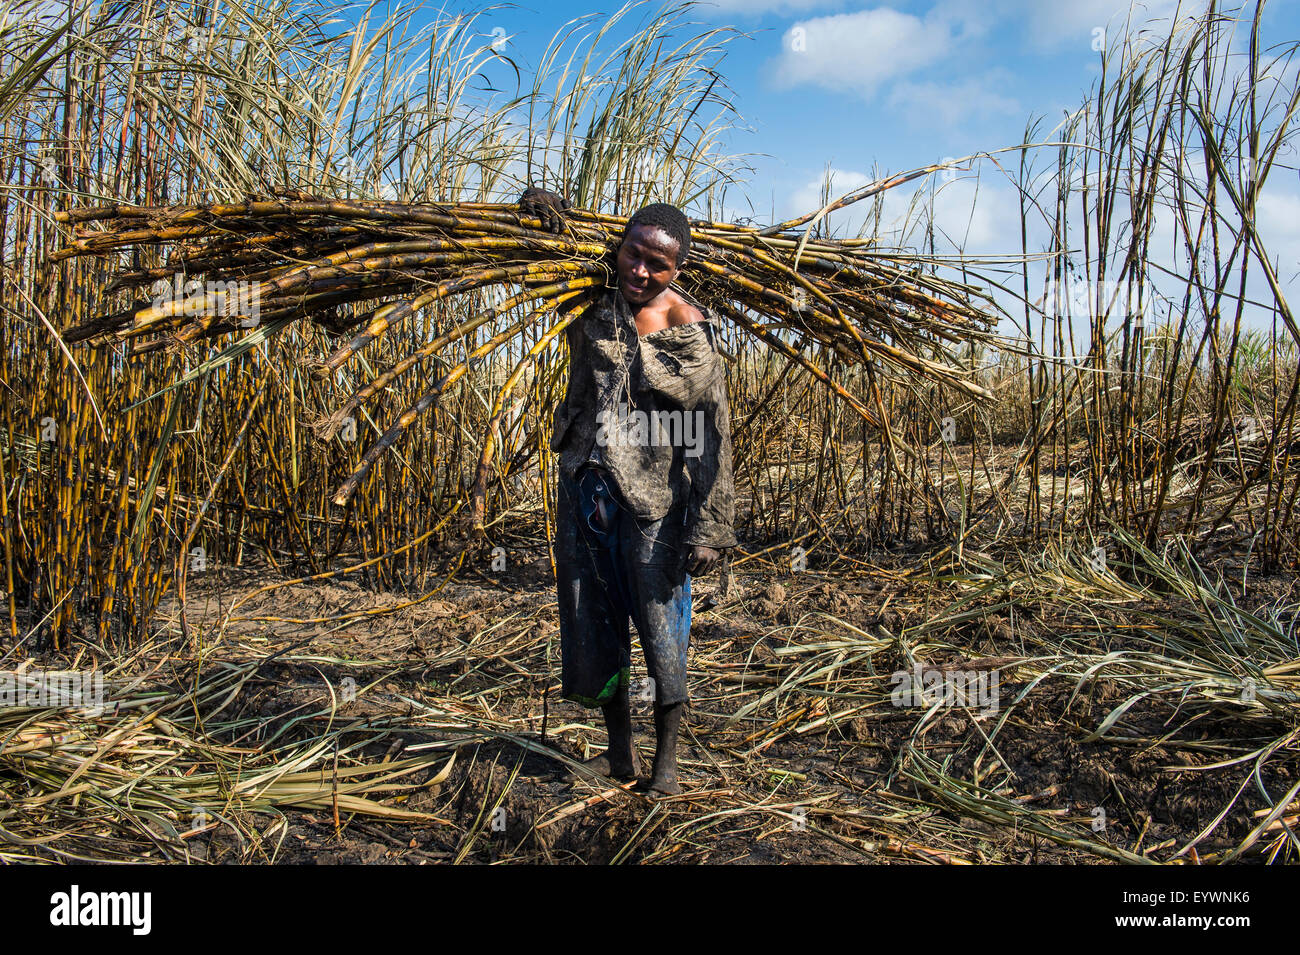 Sugar cane cutter in the burned sugar cane fields, Nchalo, Malawi, Africa - Stock Image